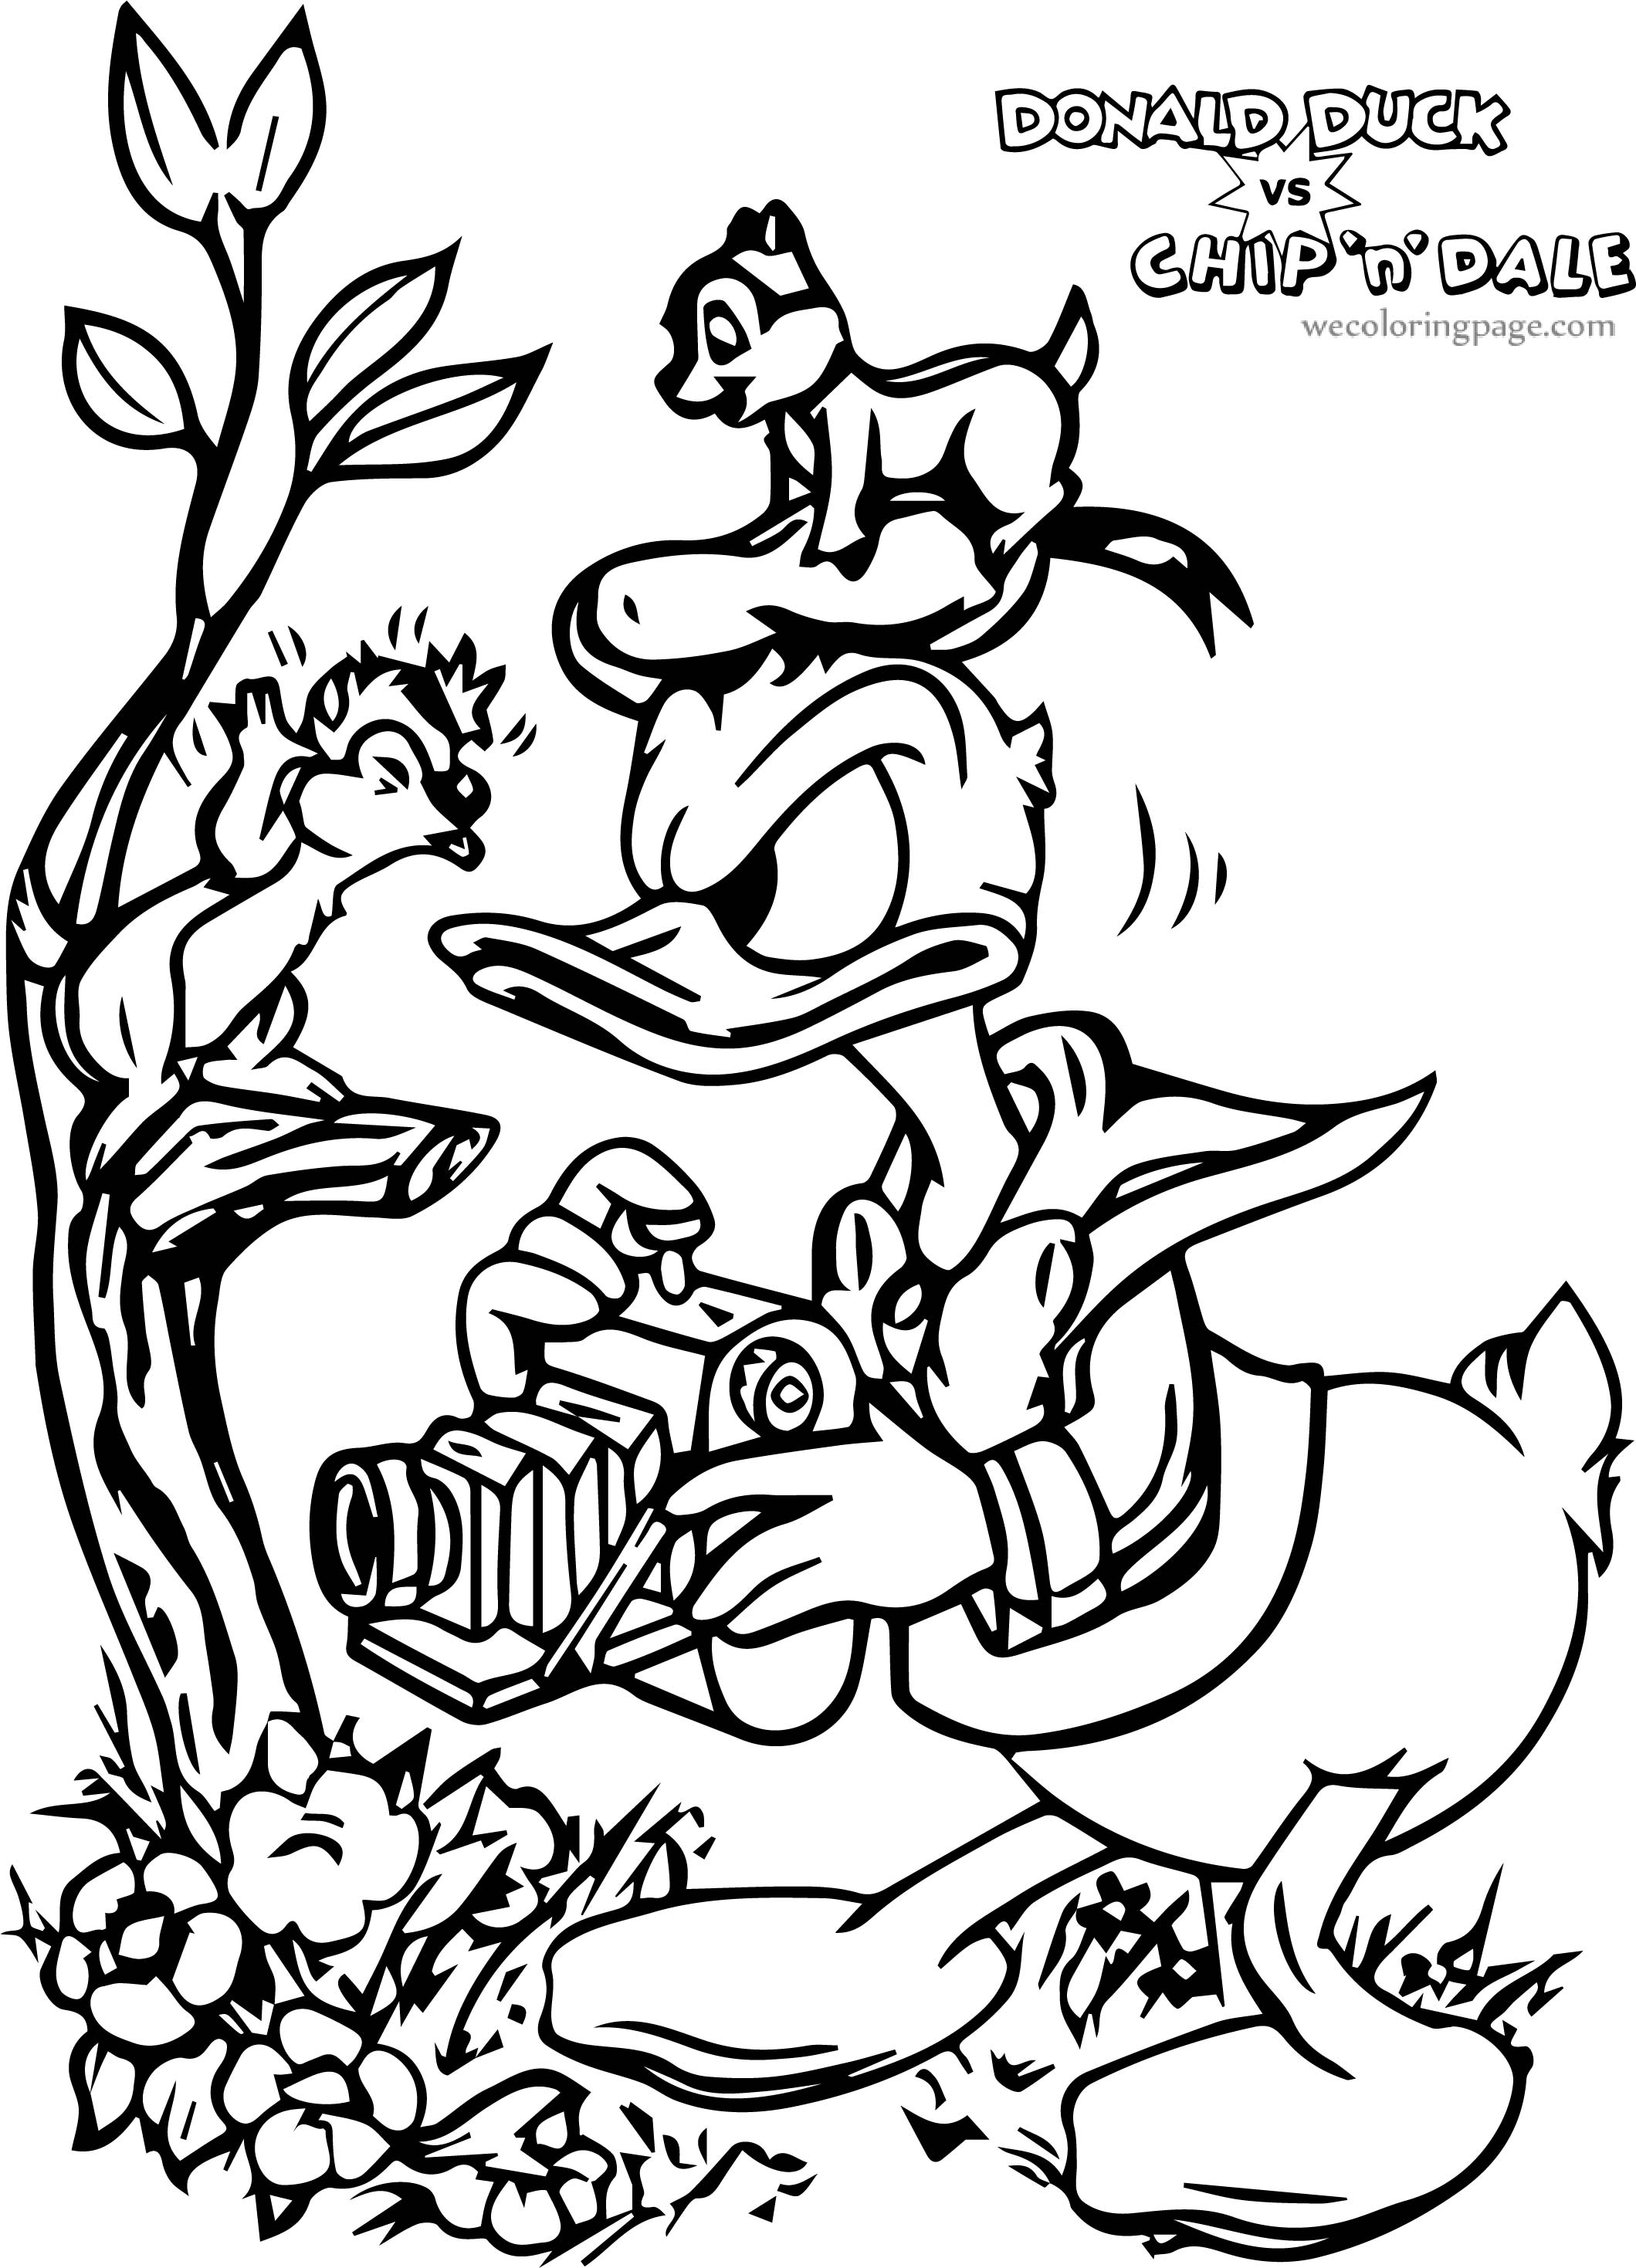 Donald Duck Chip And Dale Donald Duck Coloring Page